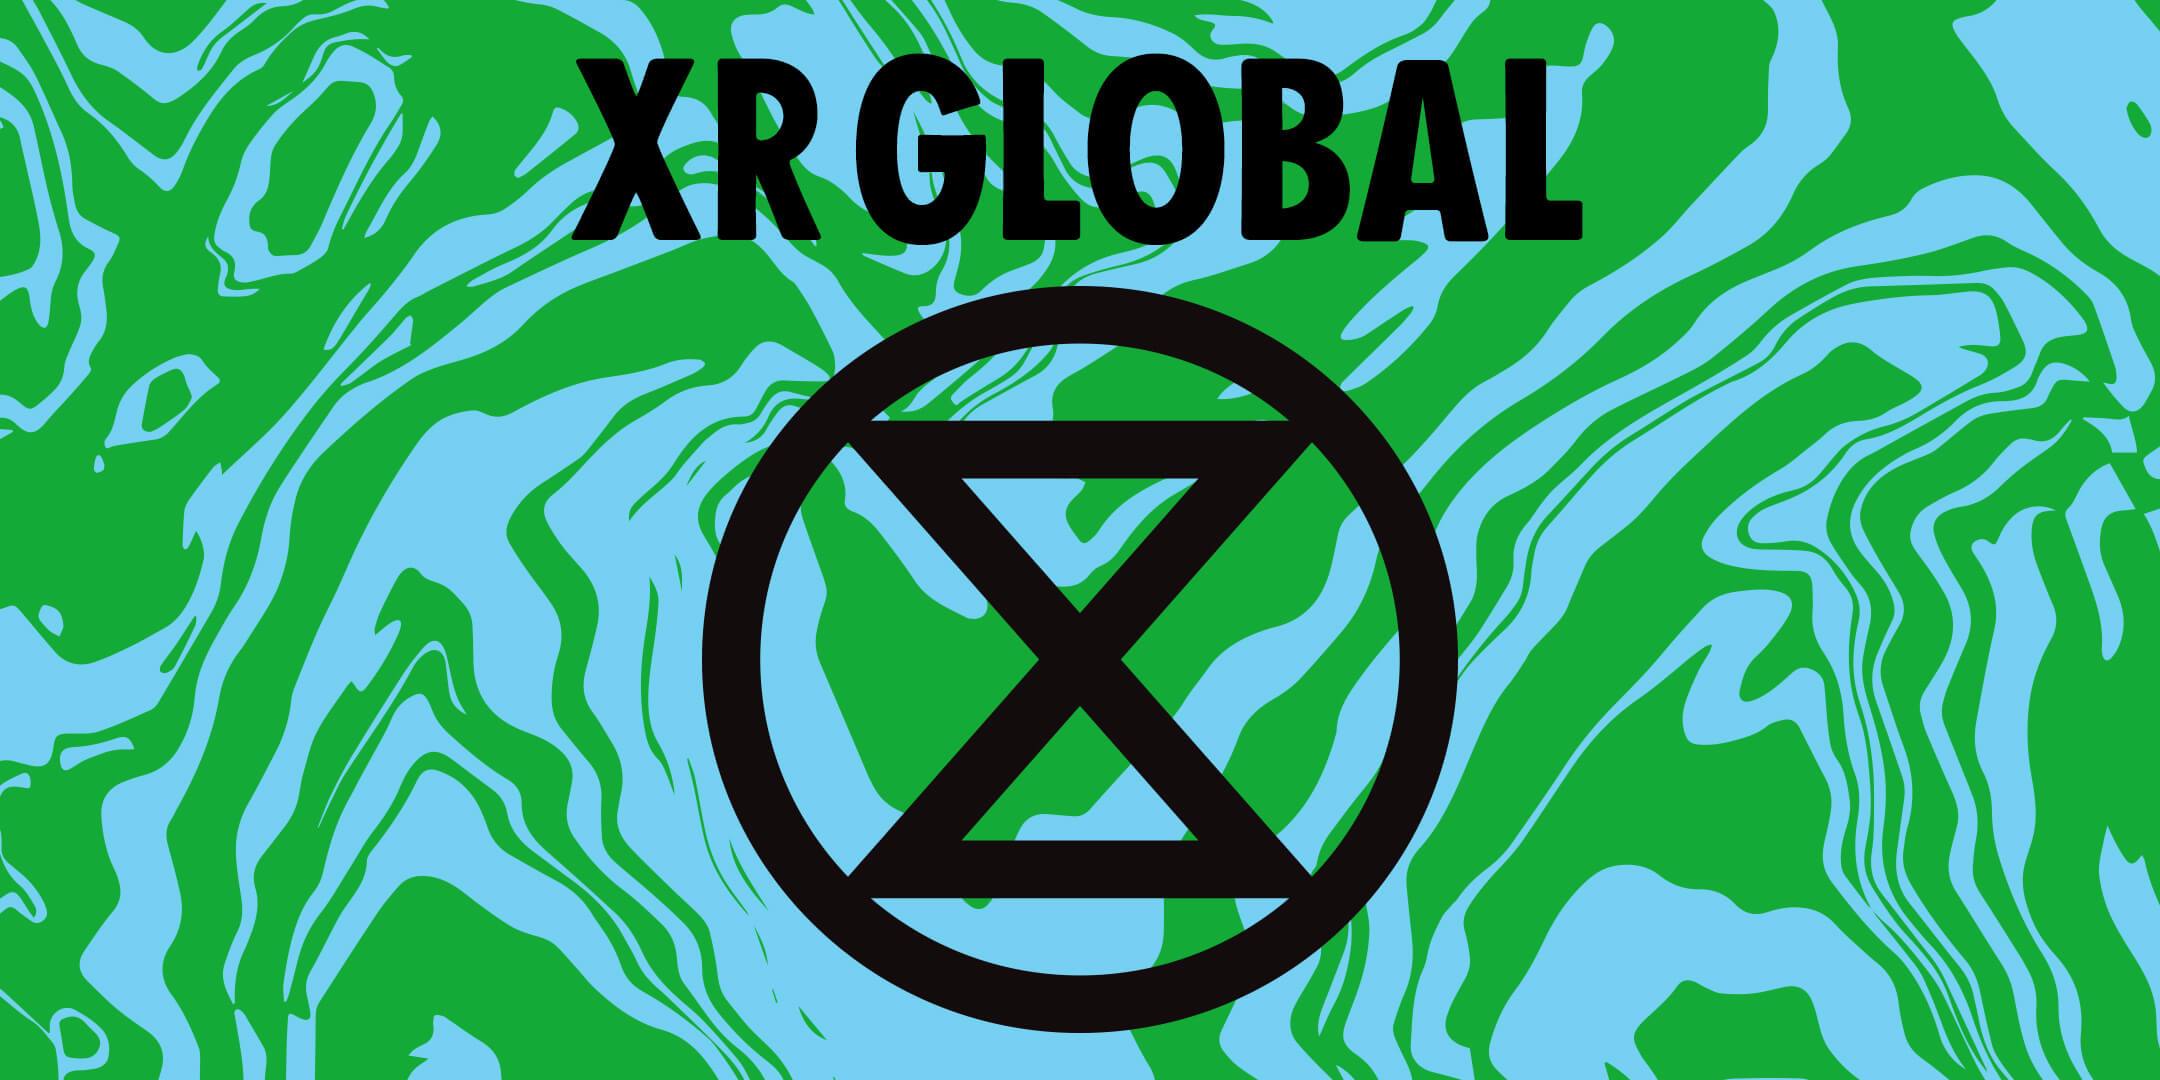 Extinction Rebellion Global | Find XR branches and events